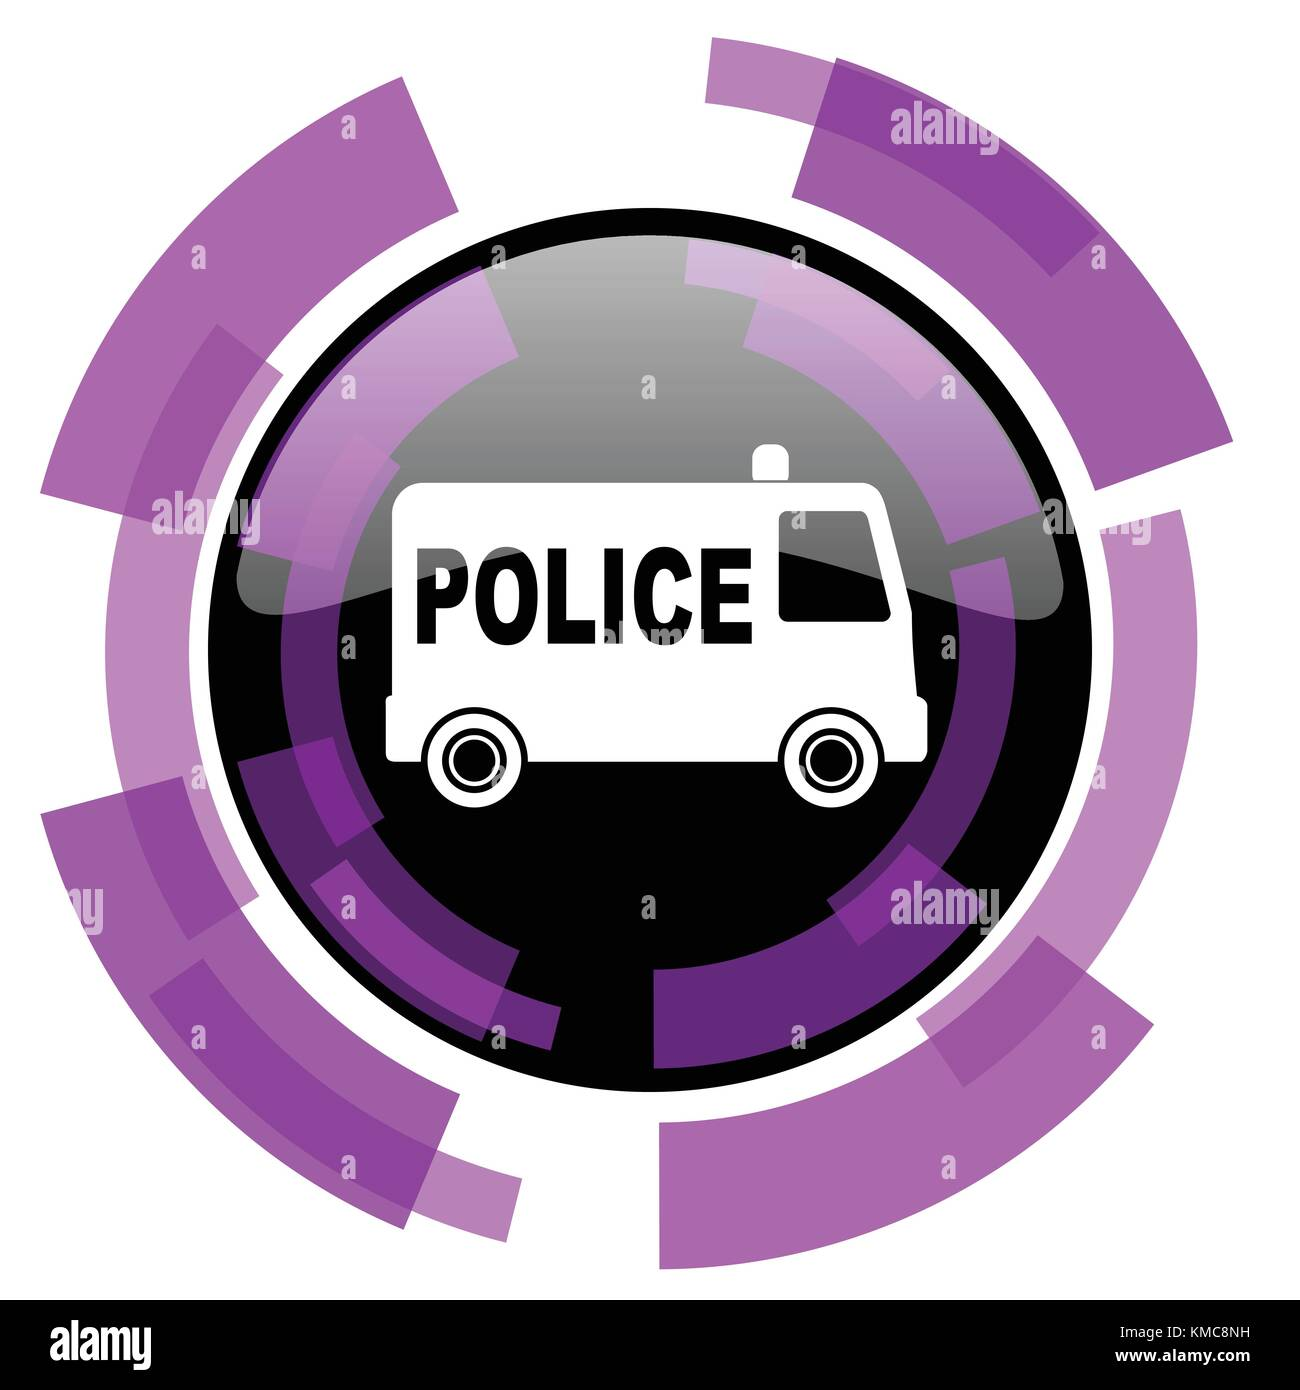 Police pink violet modern design vector web and smartphone icon. Round button in eps 10 isolated on white background. Stock Vector